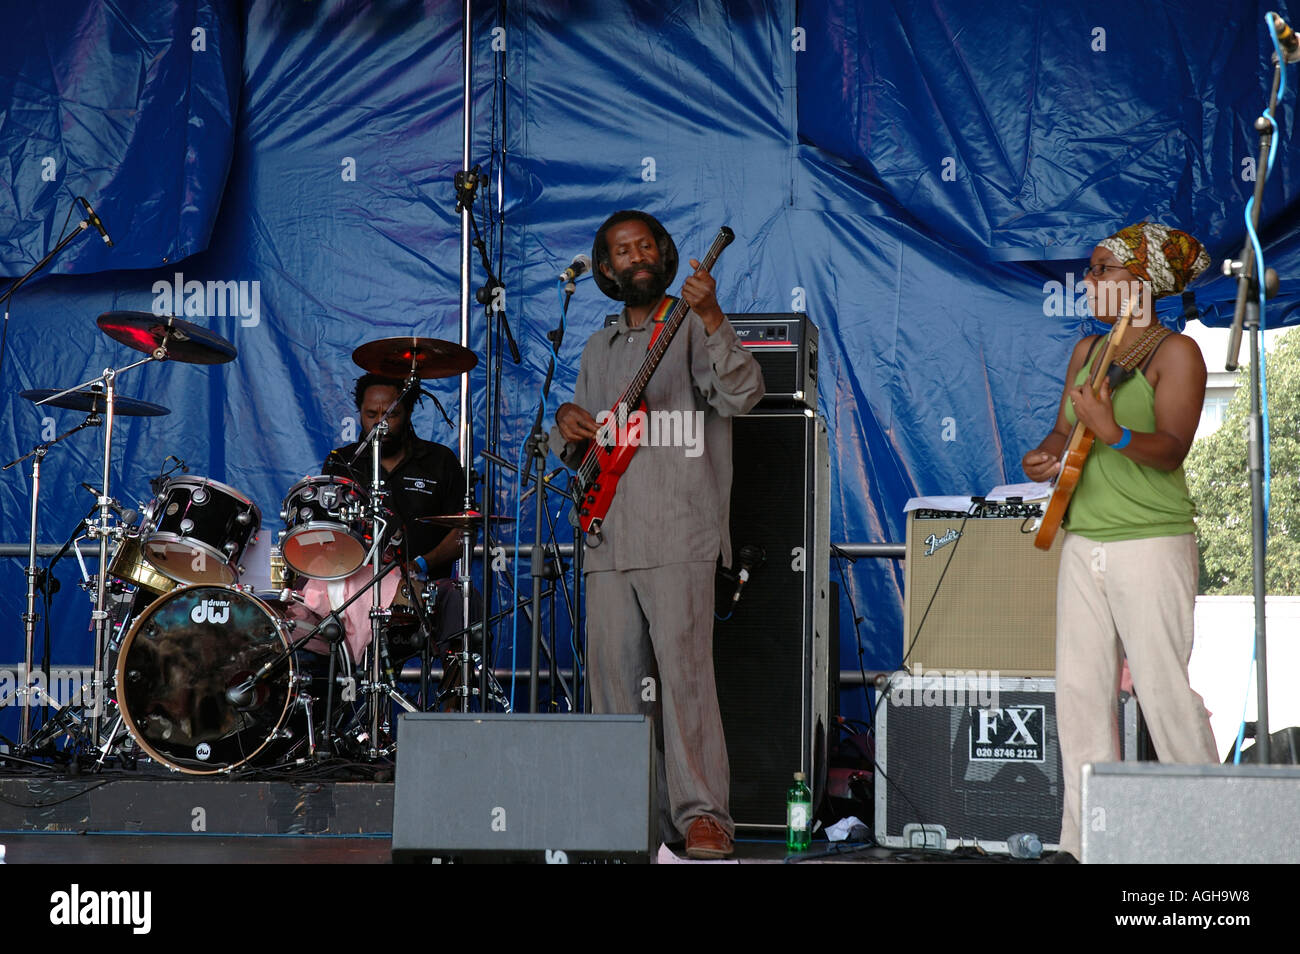 Rastafarian group playing concert Reggae  at Lambeth Country Fair in brockwell Park South London. - Stock Image